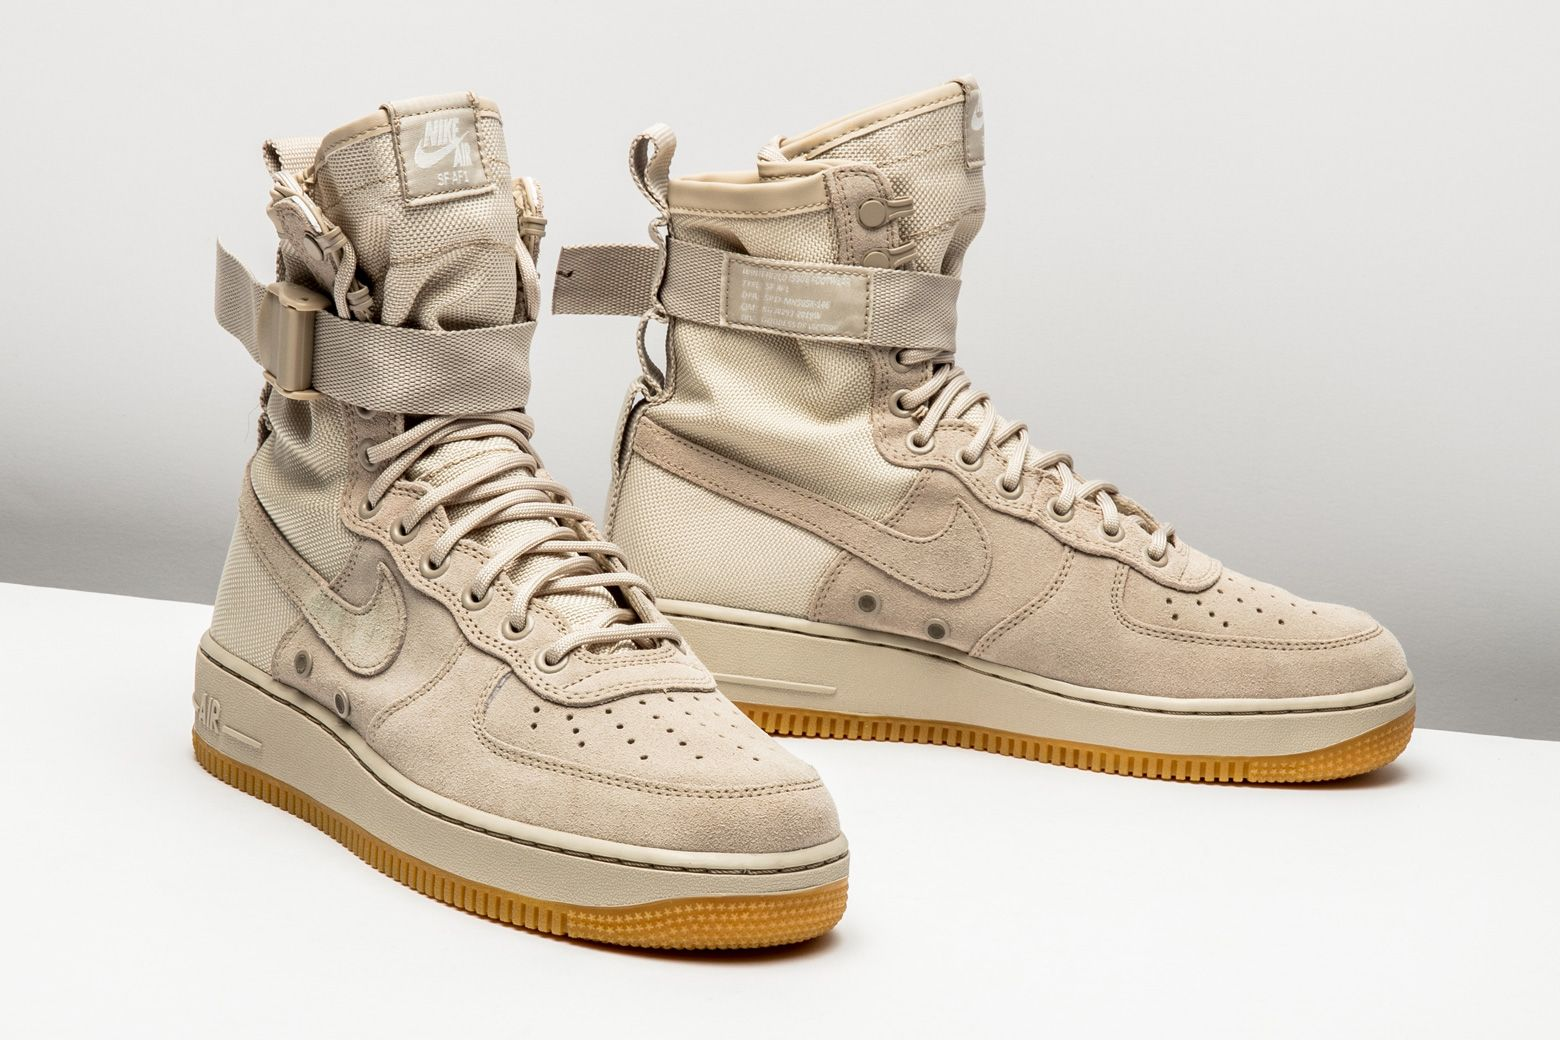 Crisp and clean, the military-inspired Nike SF-Air Force 1 returns in